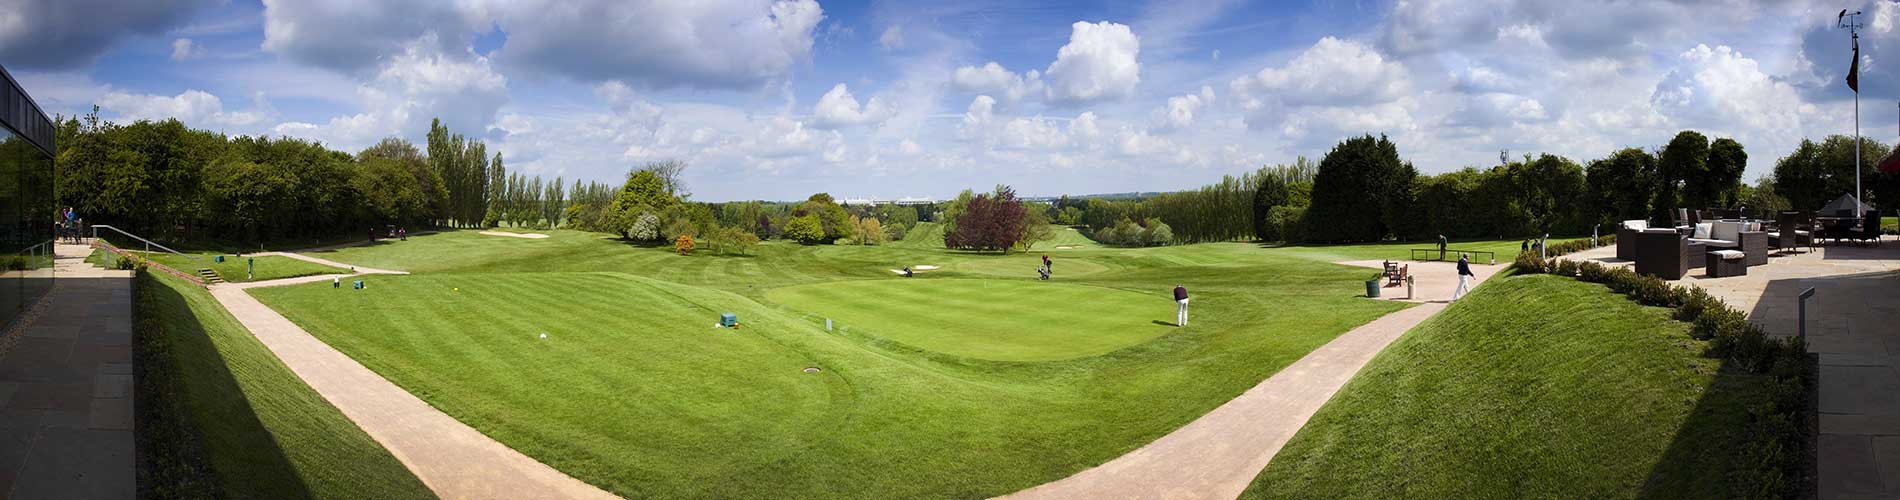 Knebworth Golf Club